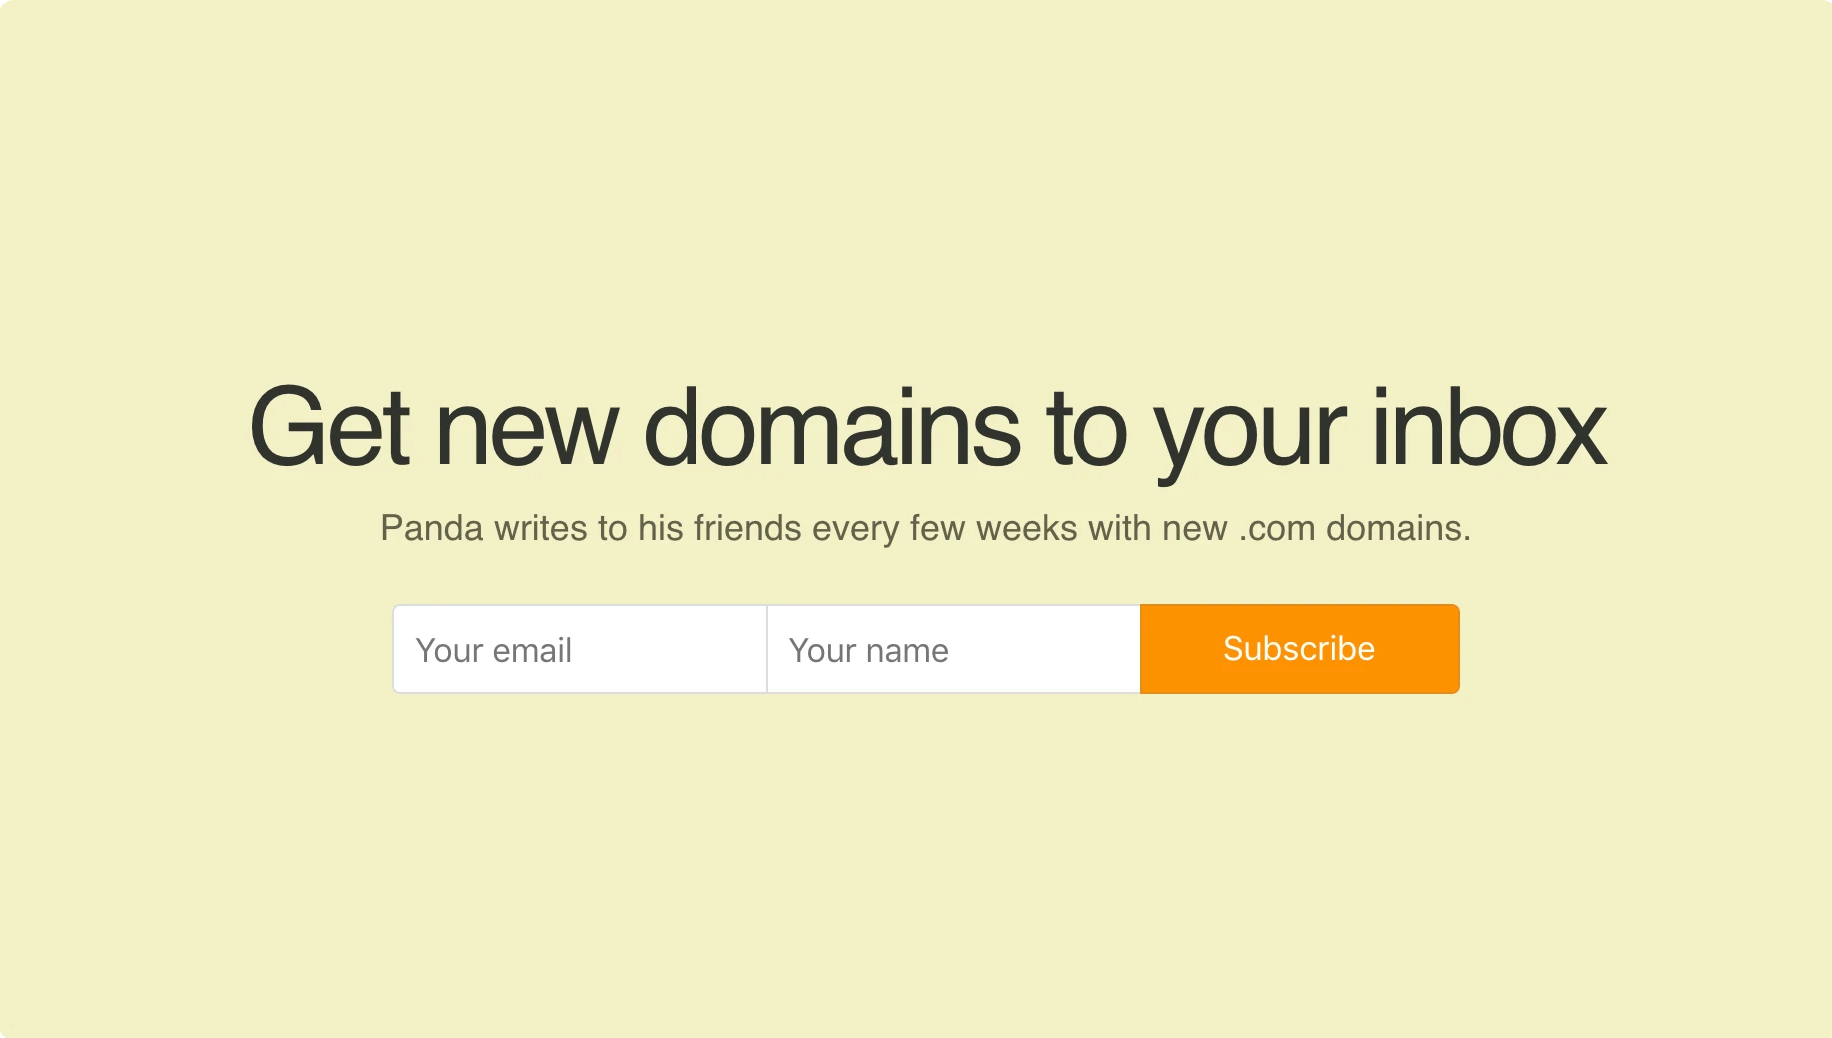 Email newsletter signup sheet doc: 7 Outstanding Newsletter Signup Examples Neverbounce